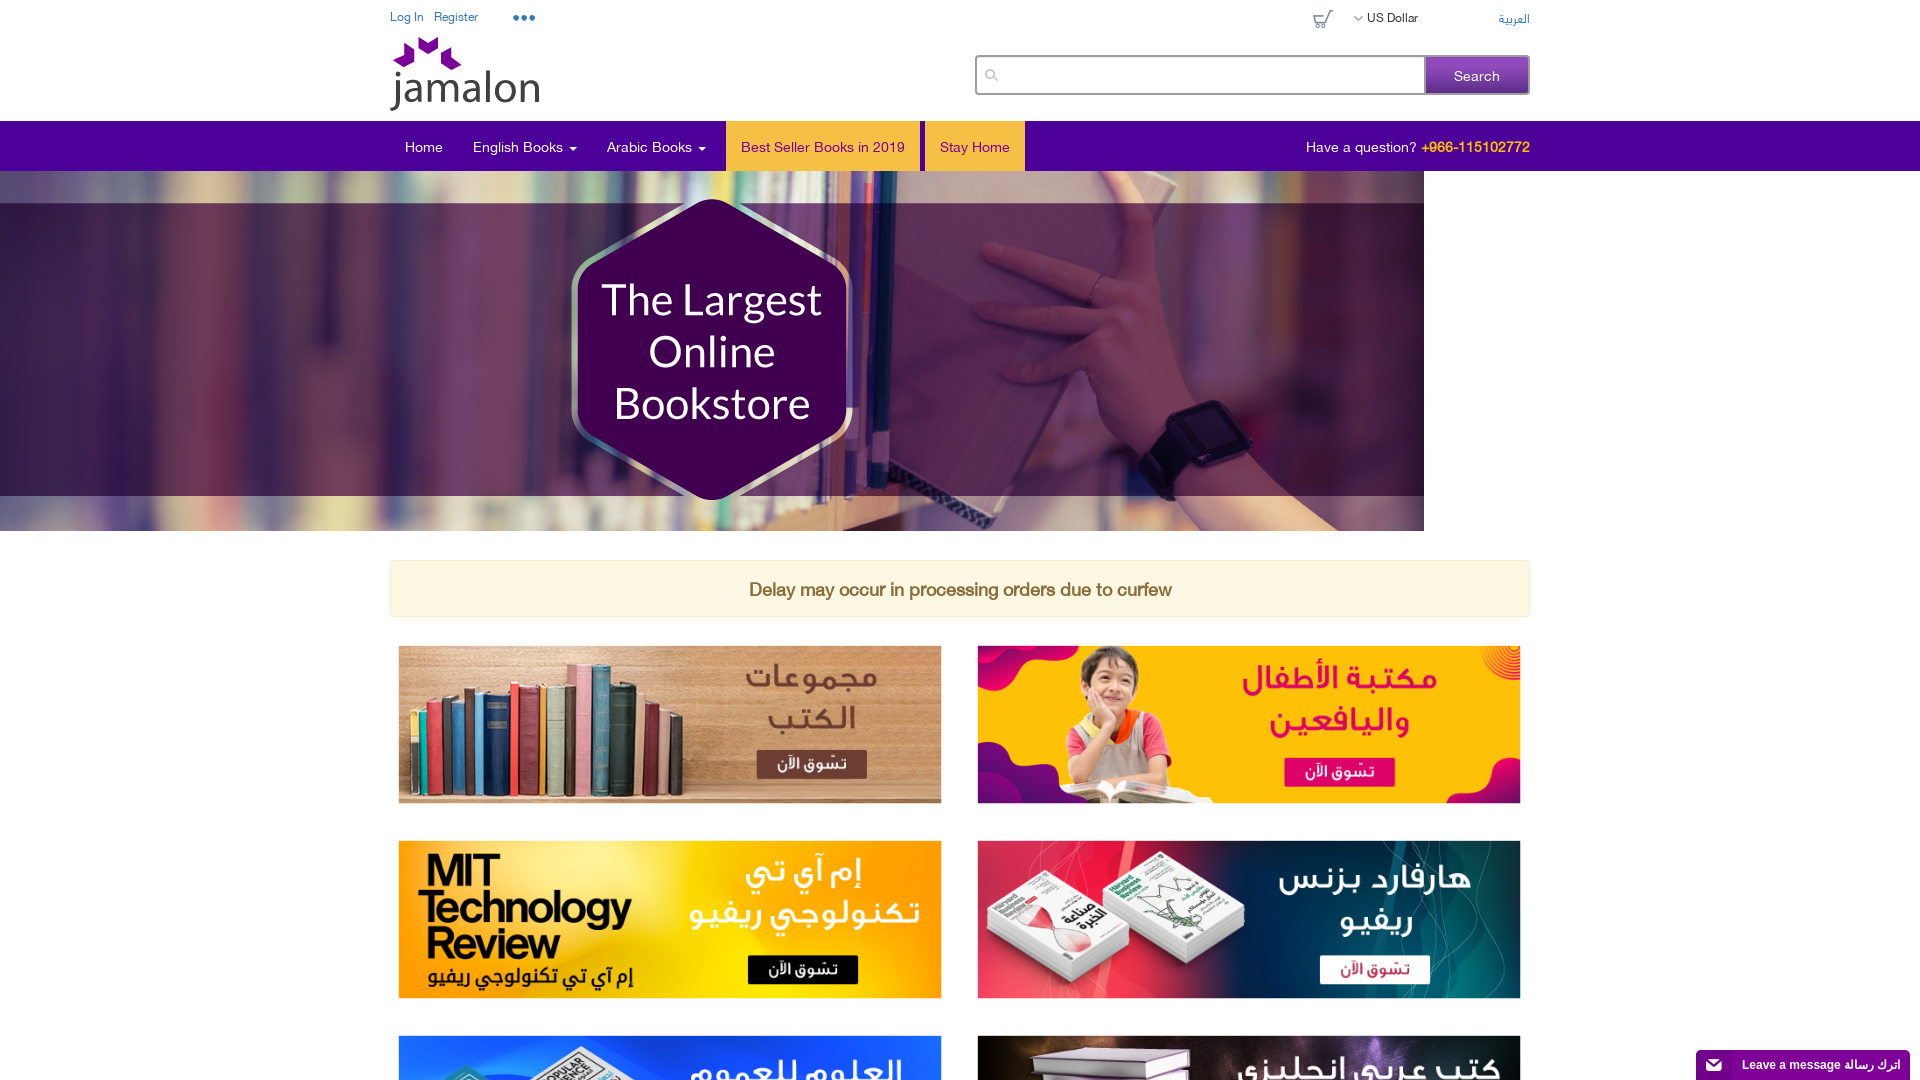 Jamalon website